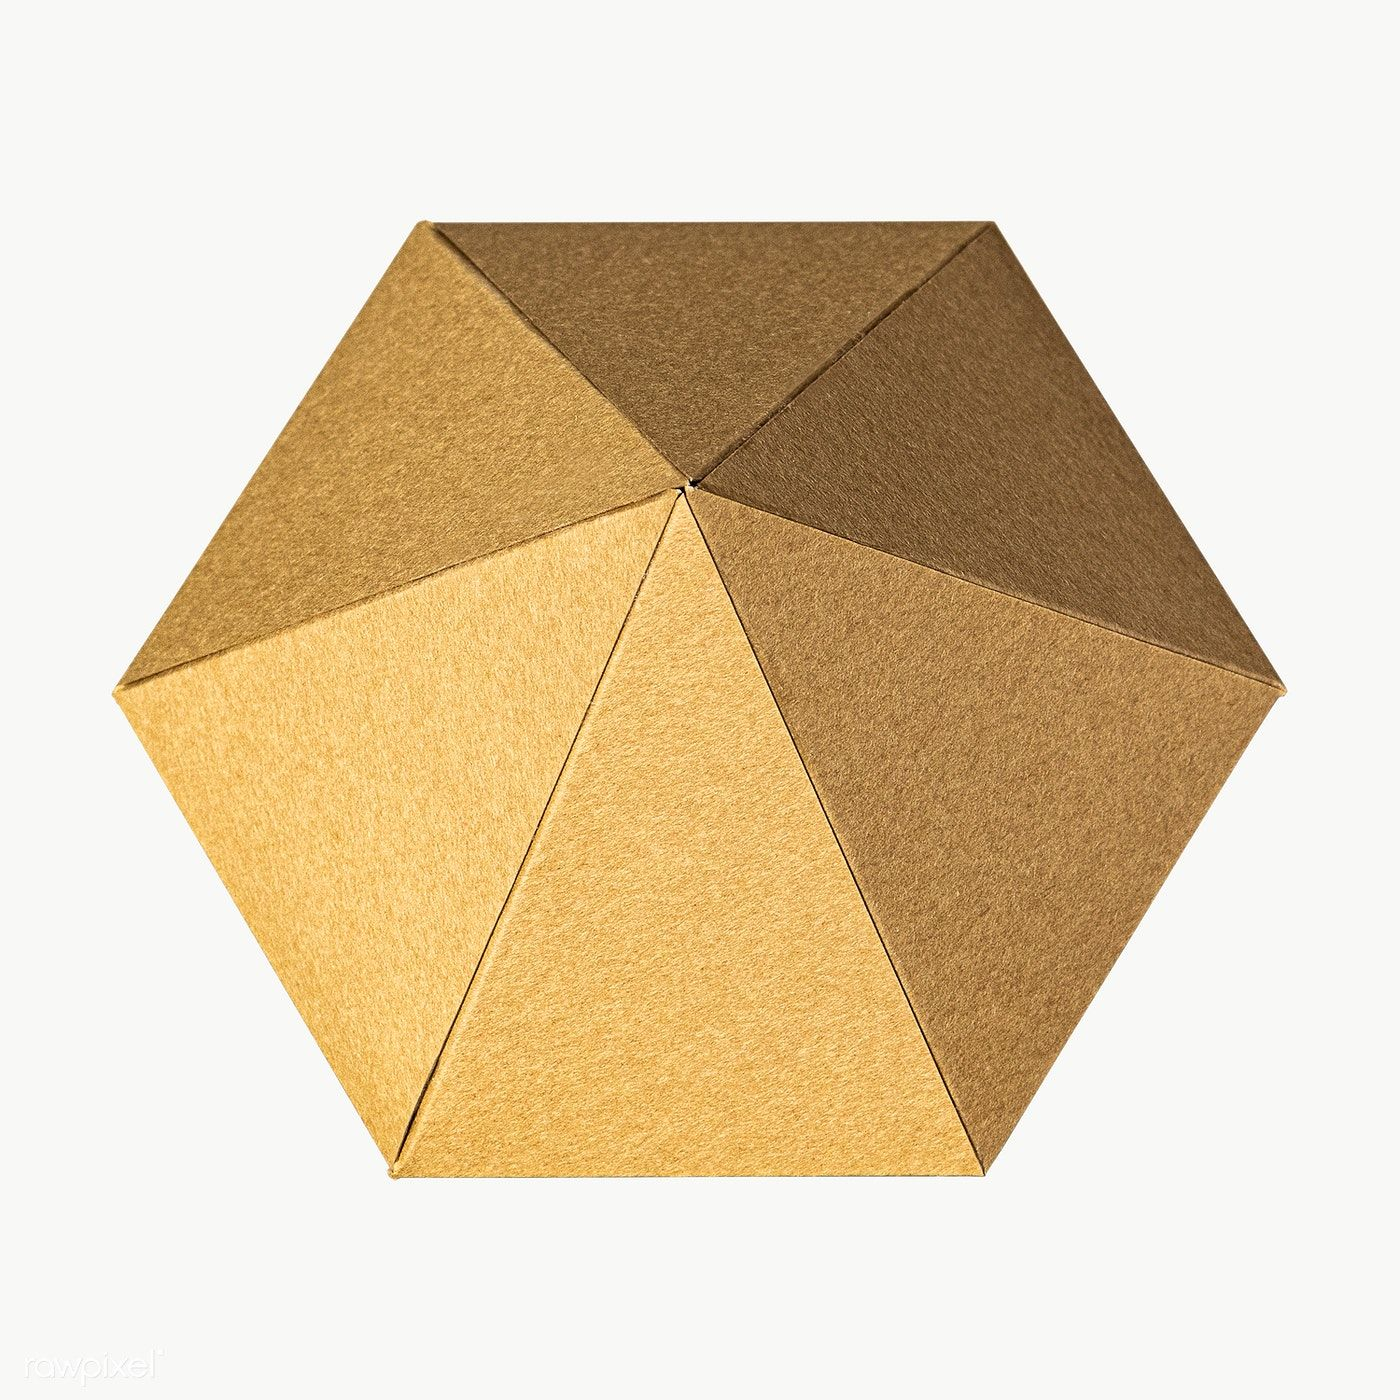 3d Golden Diamond Shaped Paper Craft On Design Element Free Image By Rawpixel Com Jira Paper Crafts Diamond Shapes Golden Diamonds